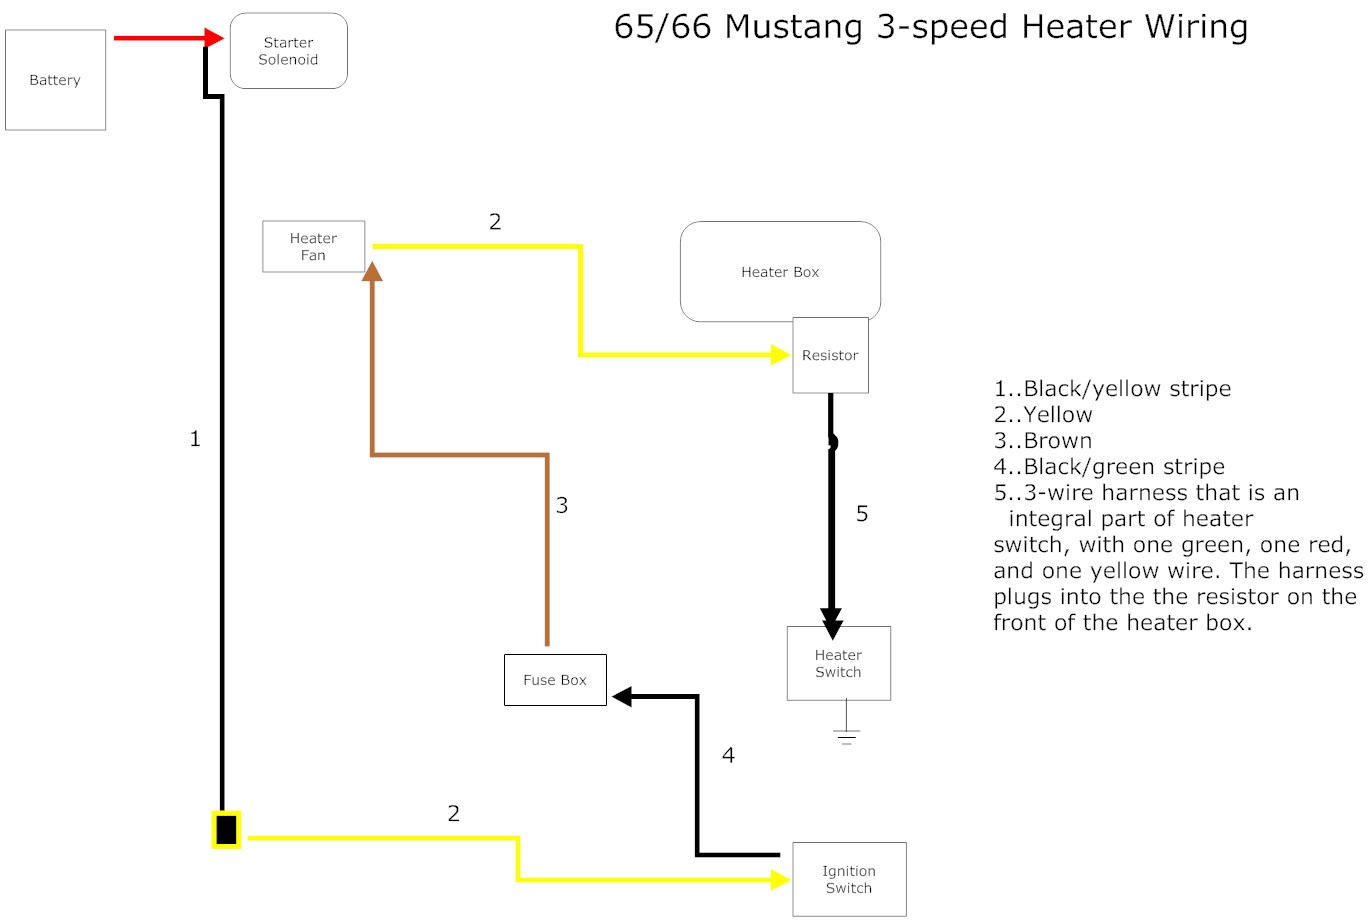 65 Mustang Horn Wiring Diagram The Care And Feeding Of Ponies 1965 Mustang Wiring Diagrams